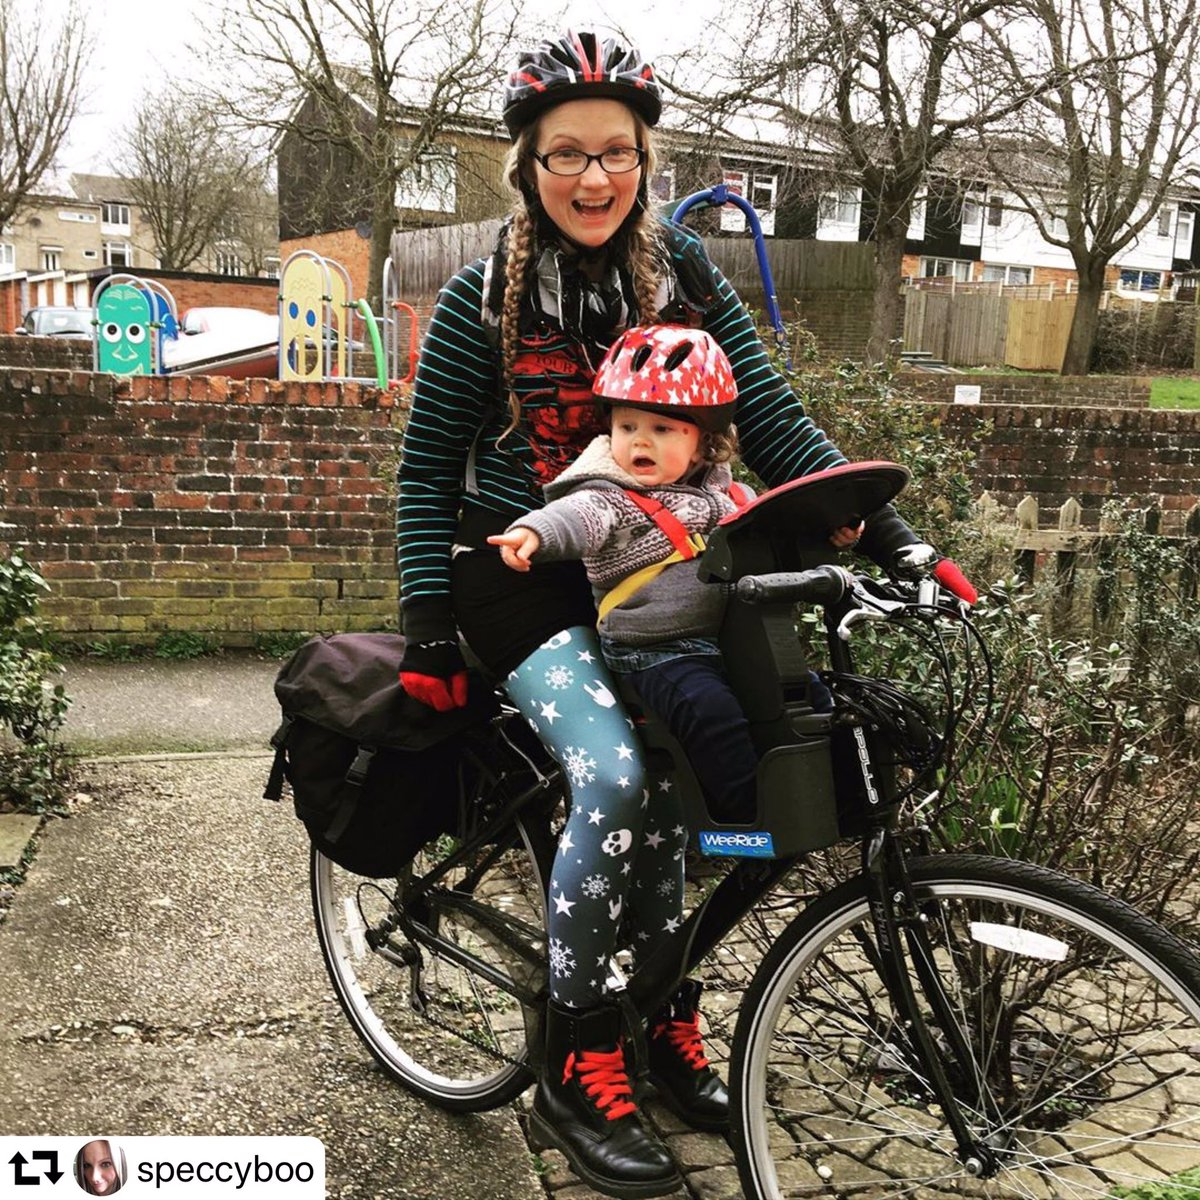 Thank you @speccyboo for letting us #repost your #WeeAdventures 💗🚲💗 ・・・ She loves the #bike so much she had a screeching tantrum when we got home 🙈 #baby #cycling #weeride #babyseat #wintercycling #allthelayers #cyclingmum #cyclingfamily #cyclingwithbabies #fridayfeeling